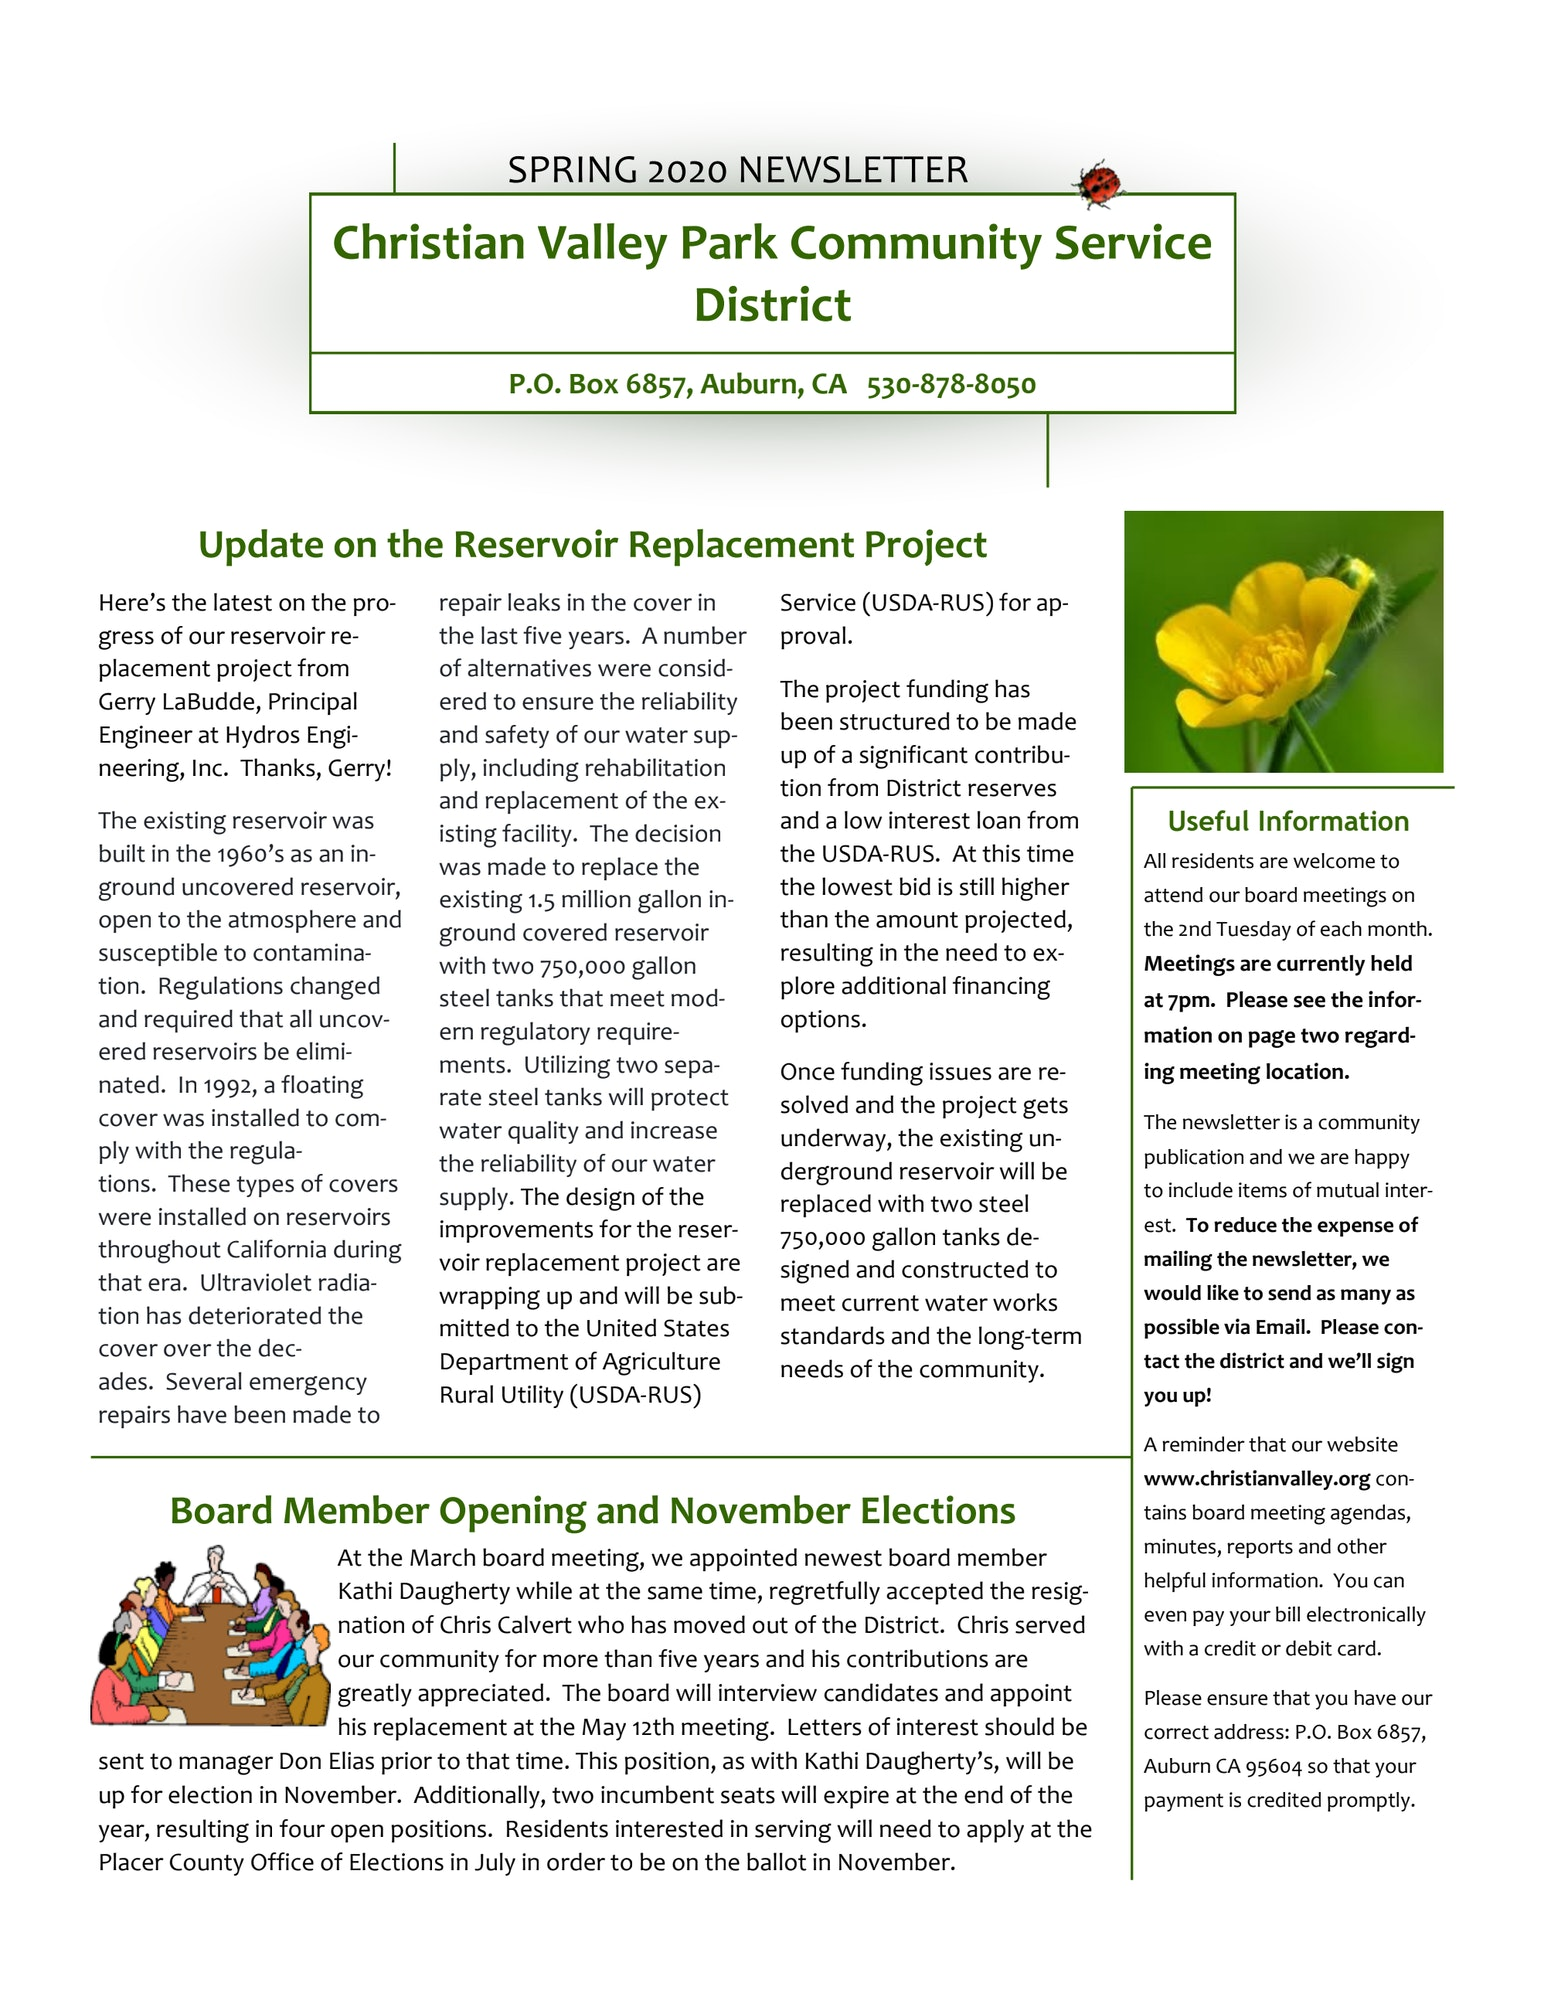 PDF image of the CVPCSD April 2020 Quarterly Newsletter page 1 of 4